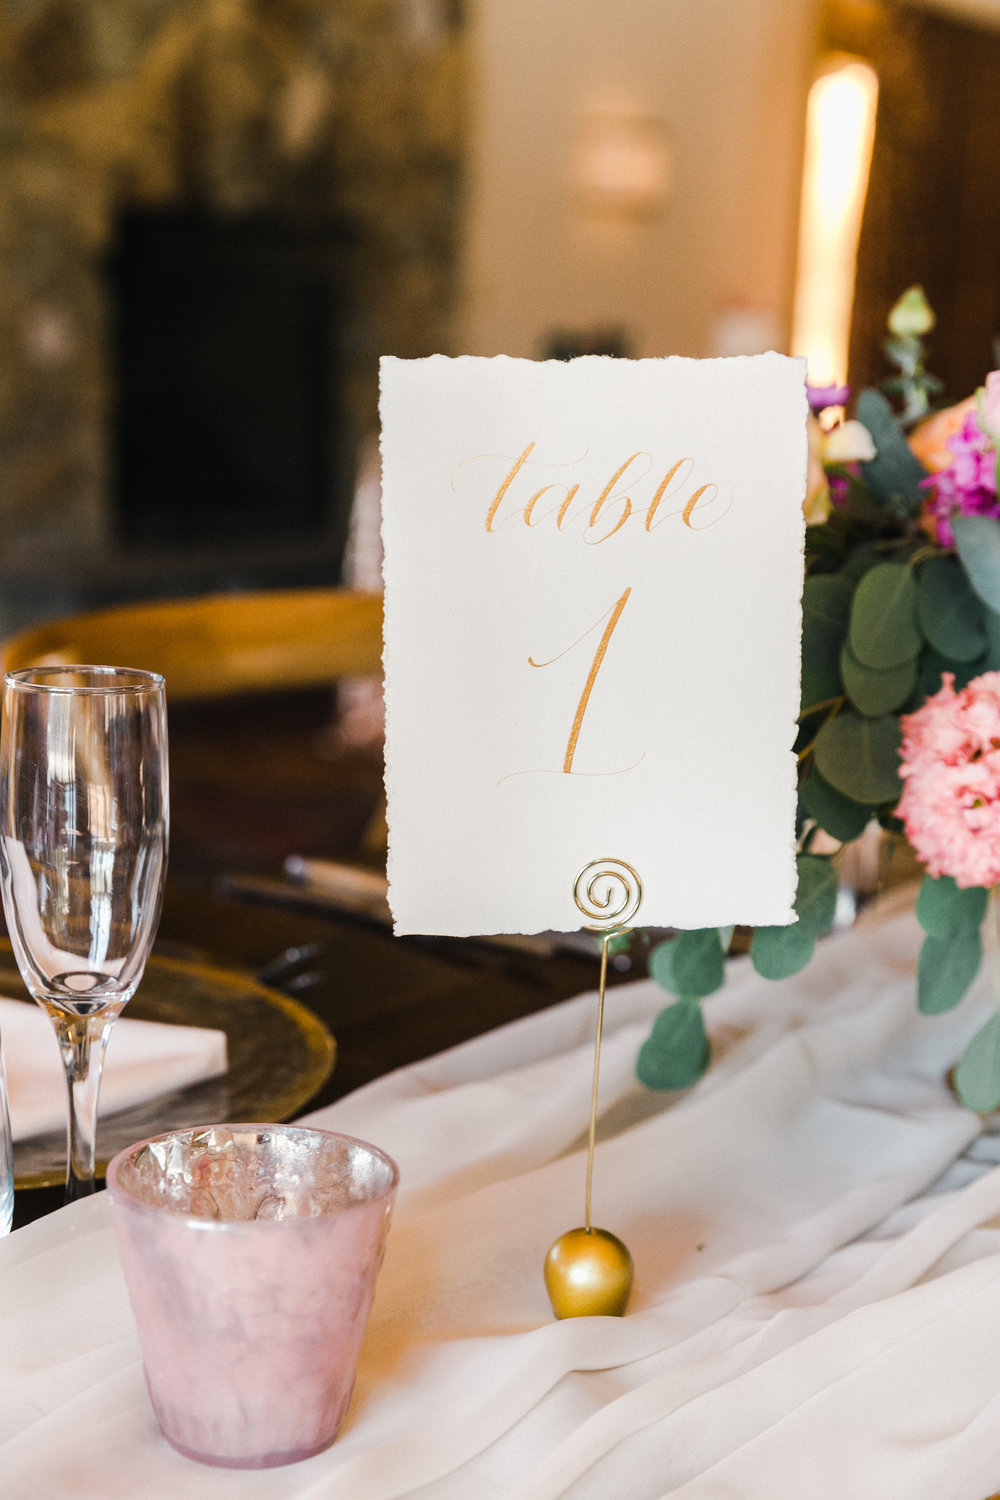 Yosemite wedding table number calligraphy items by paperloveme4.jpg